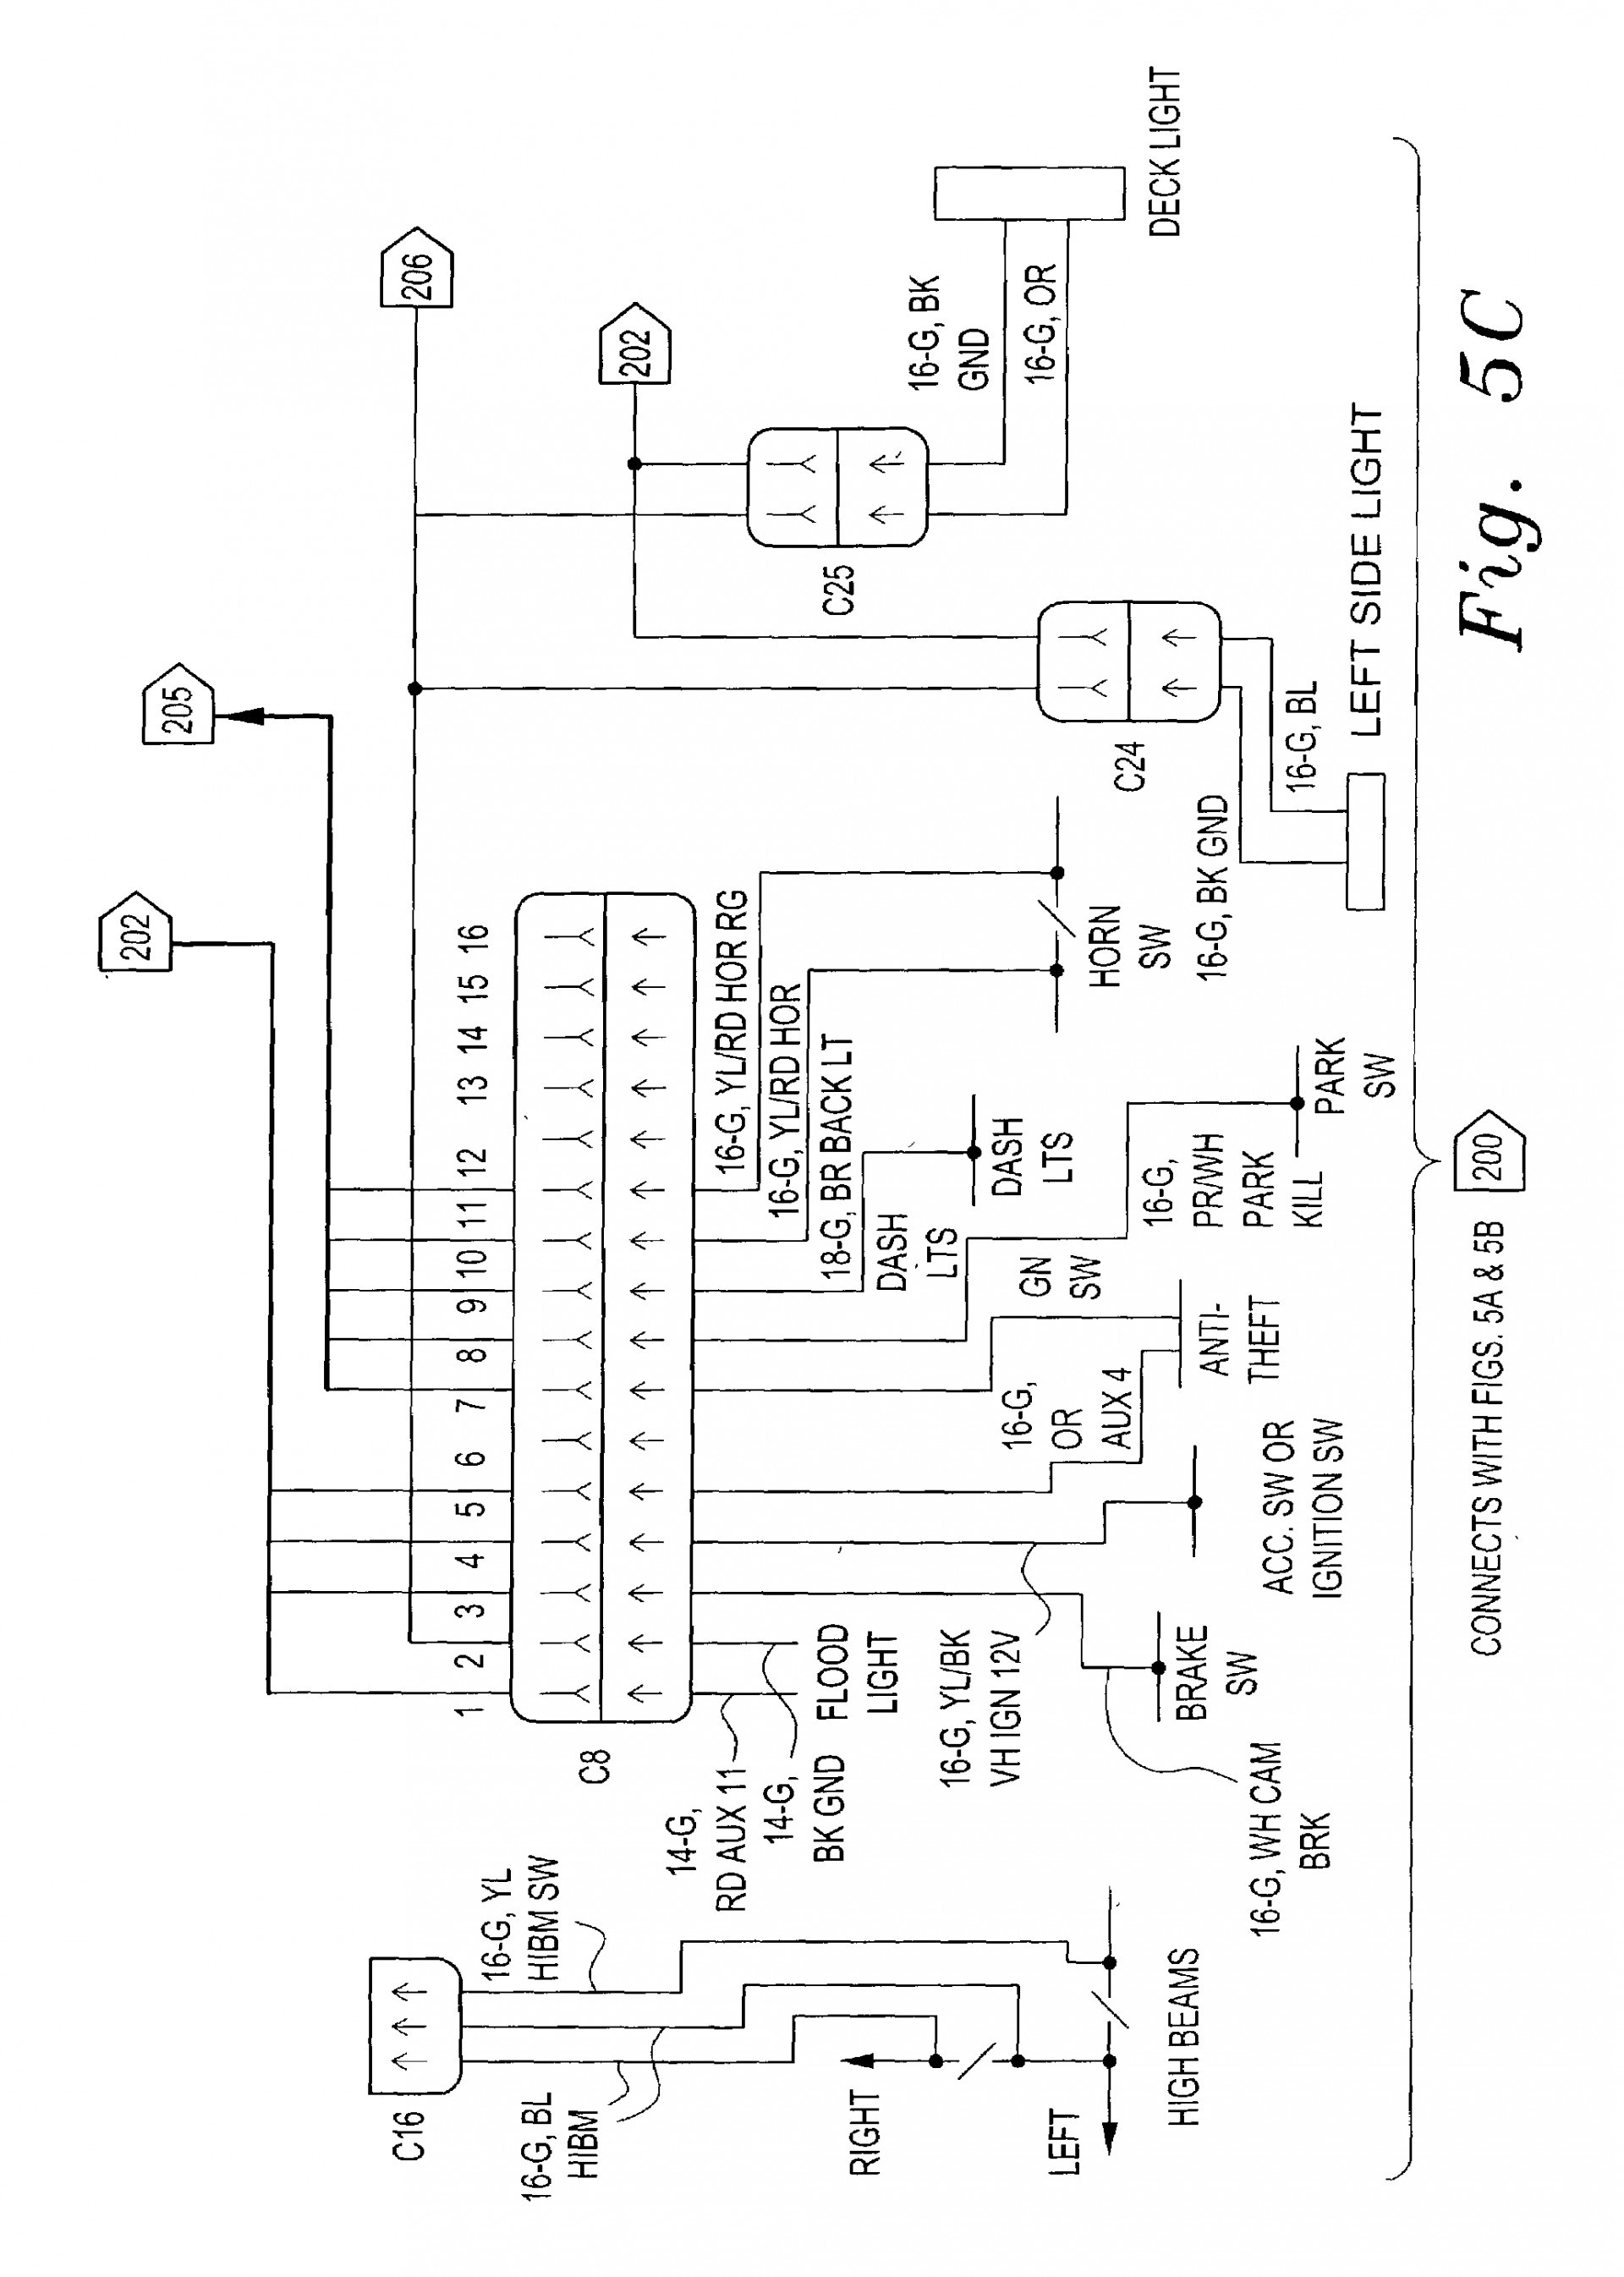 hight resolution of llv wiring diagram wiring diagram llv wiring diagram grumman llv wiring diagram wiring diagram toolbox